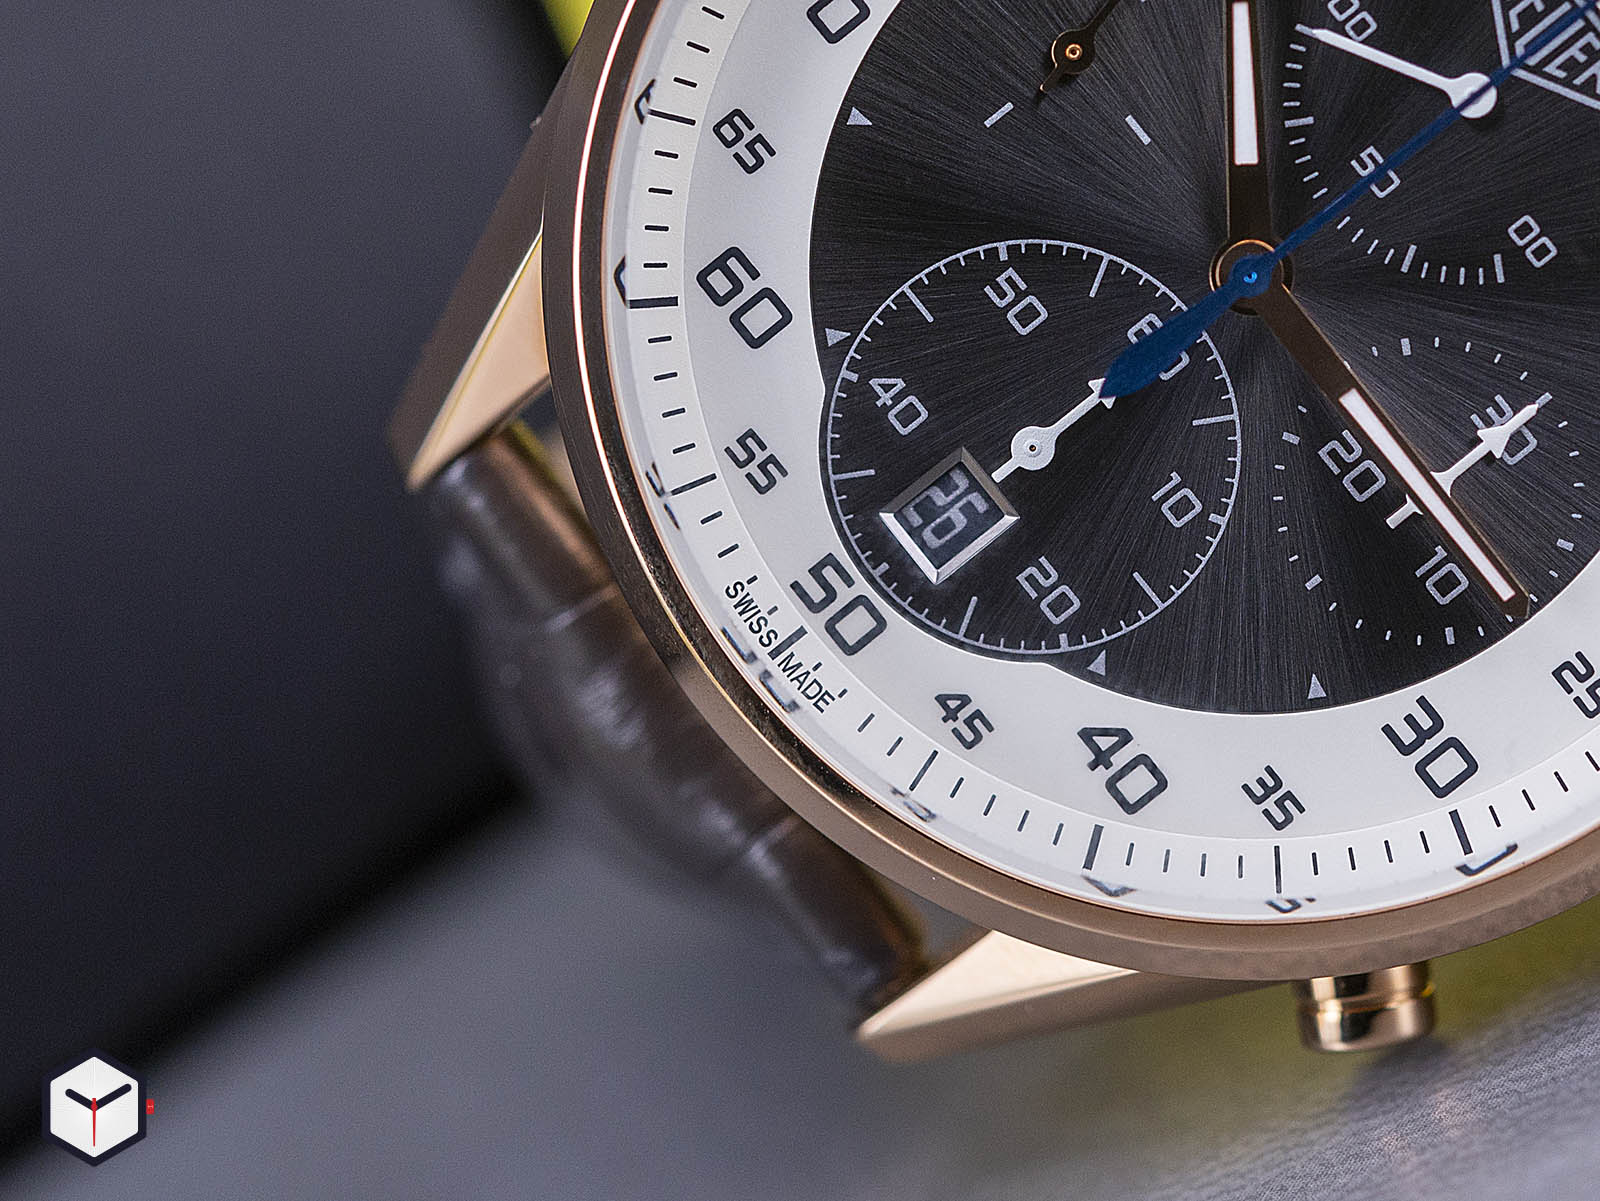 tag-heuer-carrera-mikrograph-1-100th-of-a-second-chronograph-5.jpg